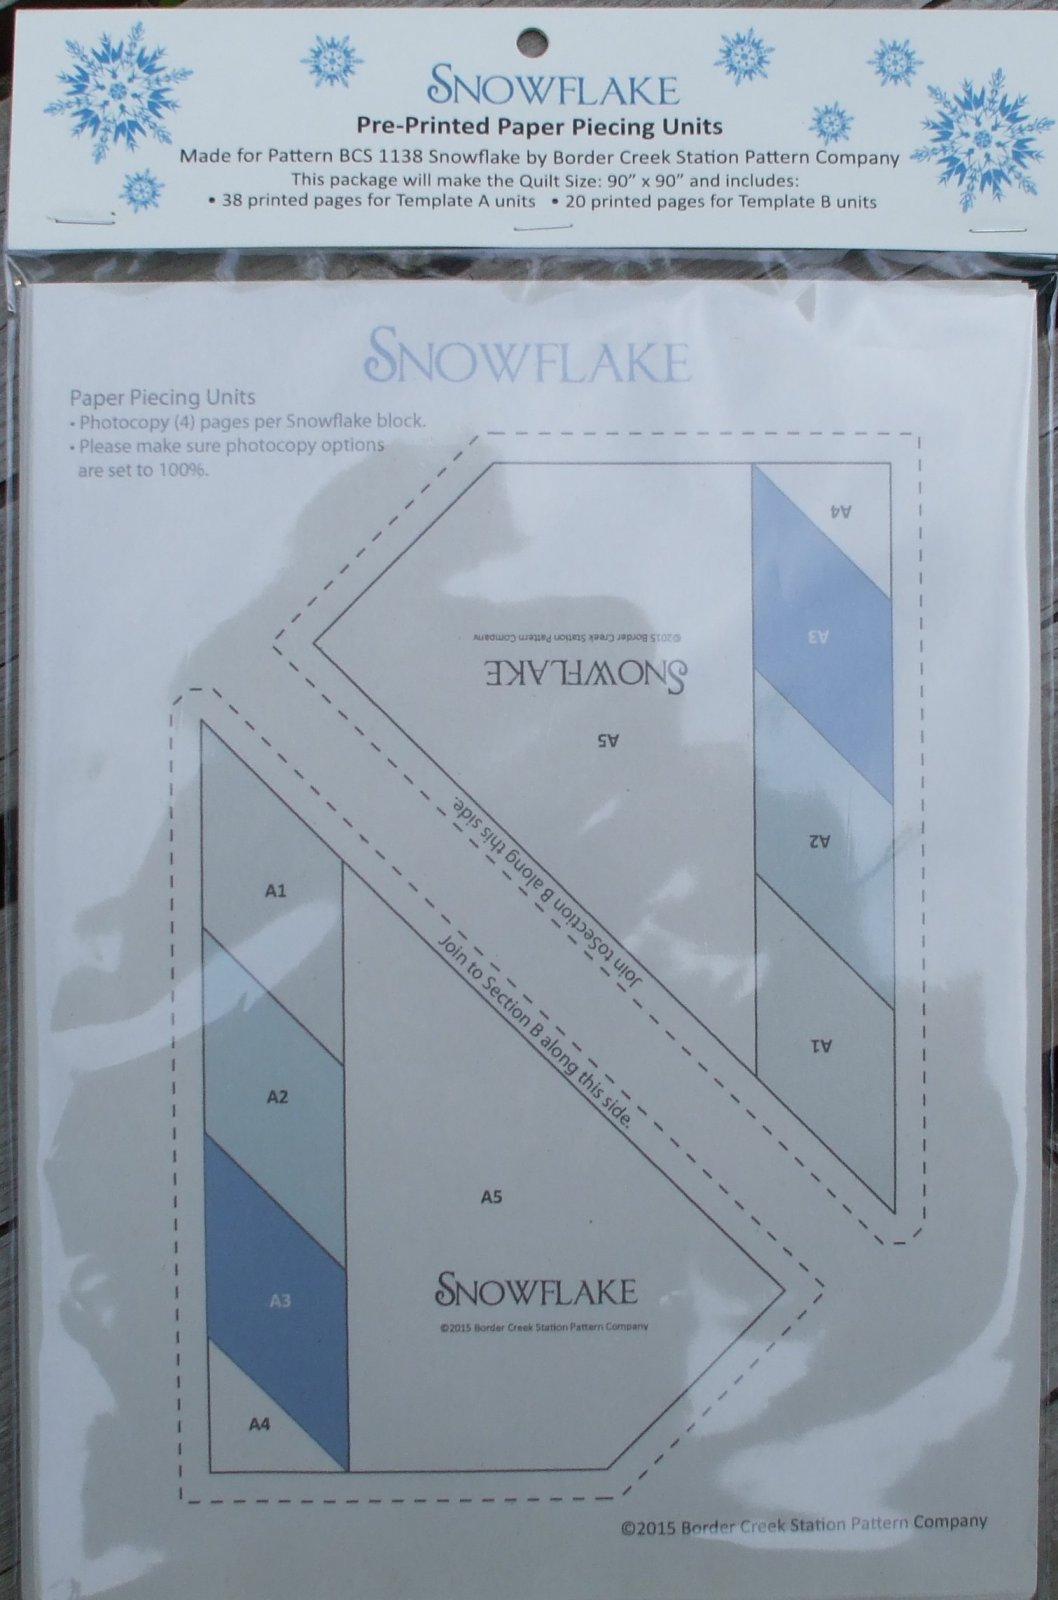 Pre-Printed Foundation Paper for BCS 1138 Snowflake